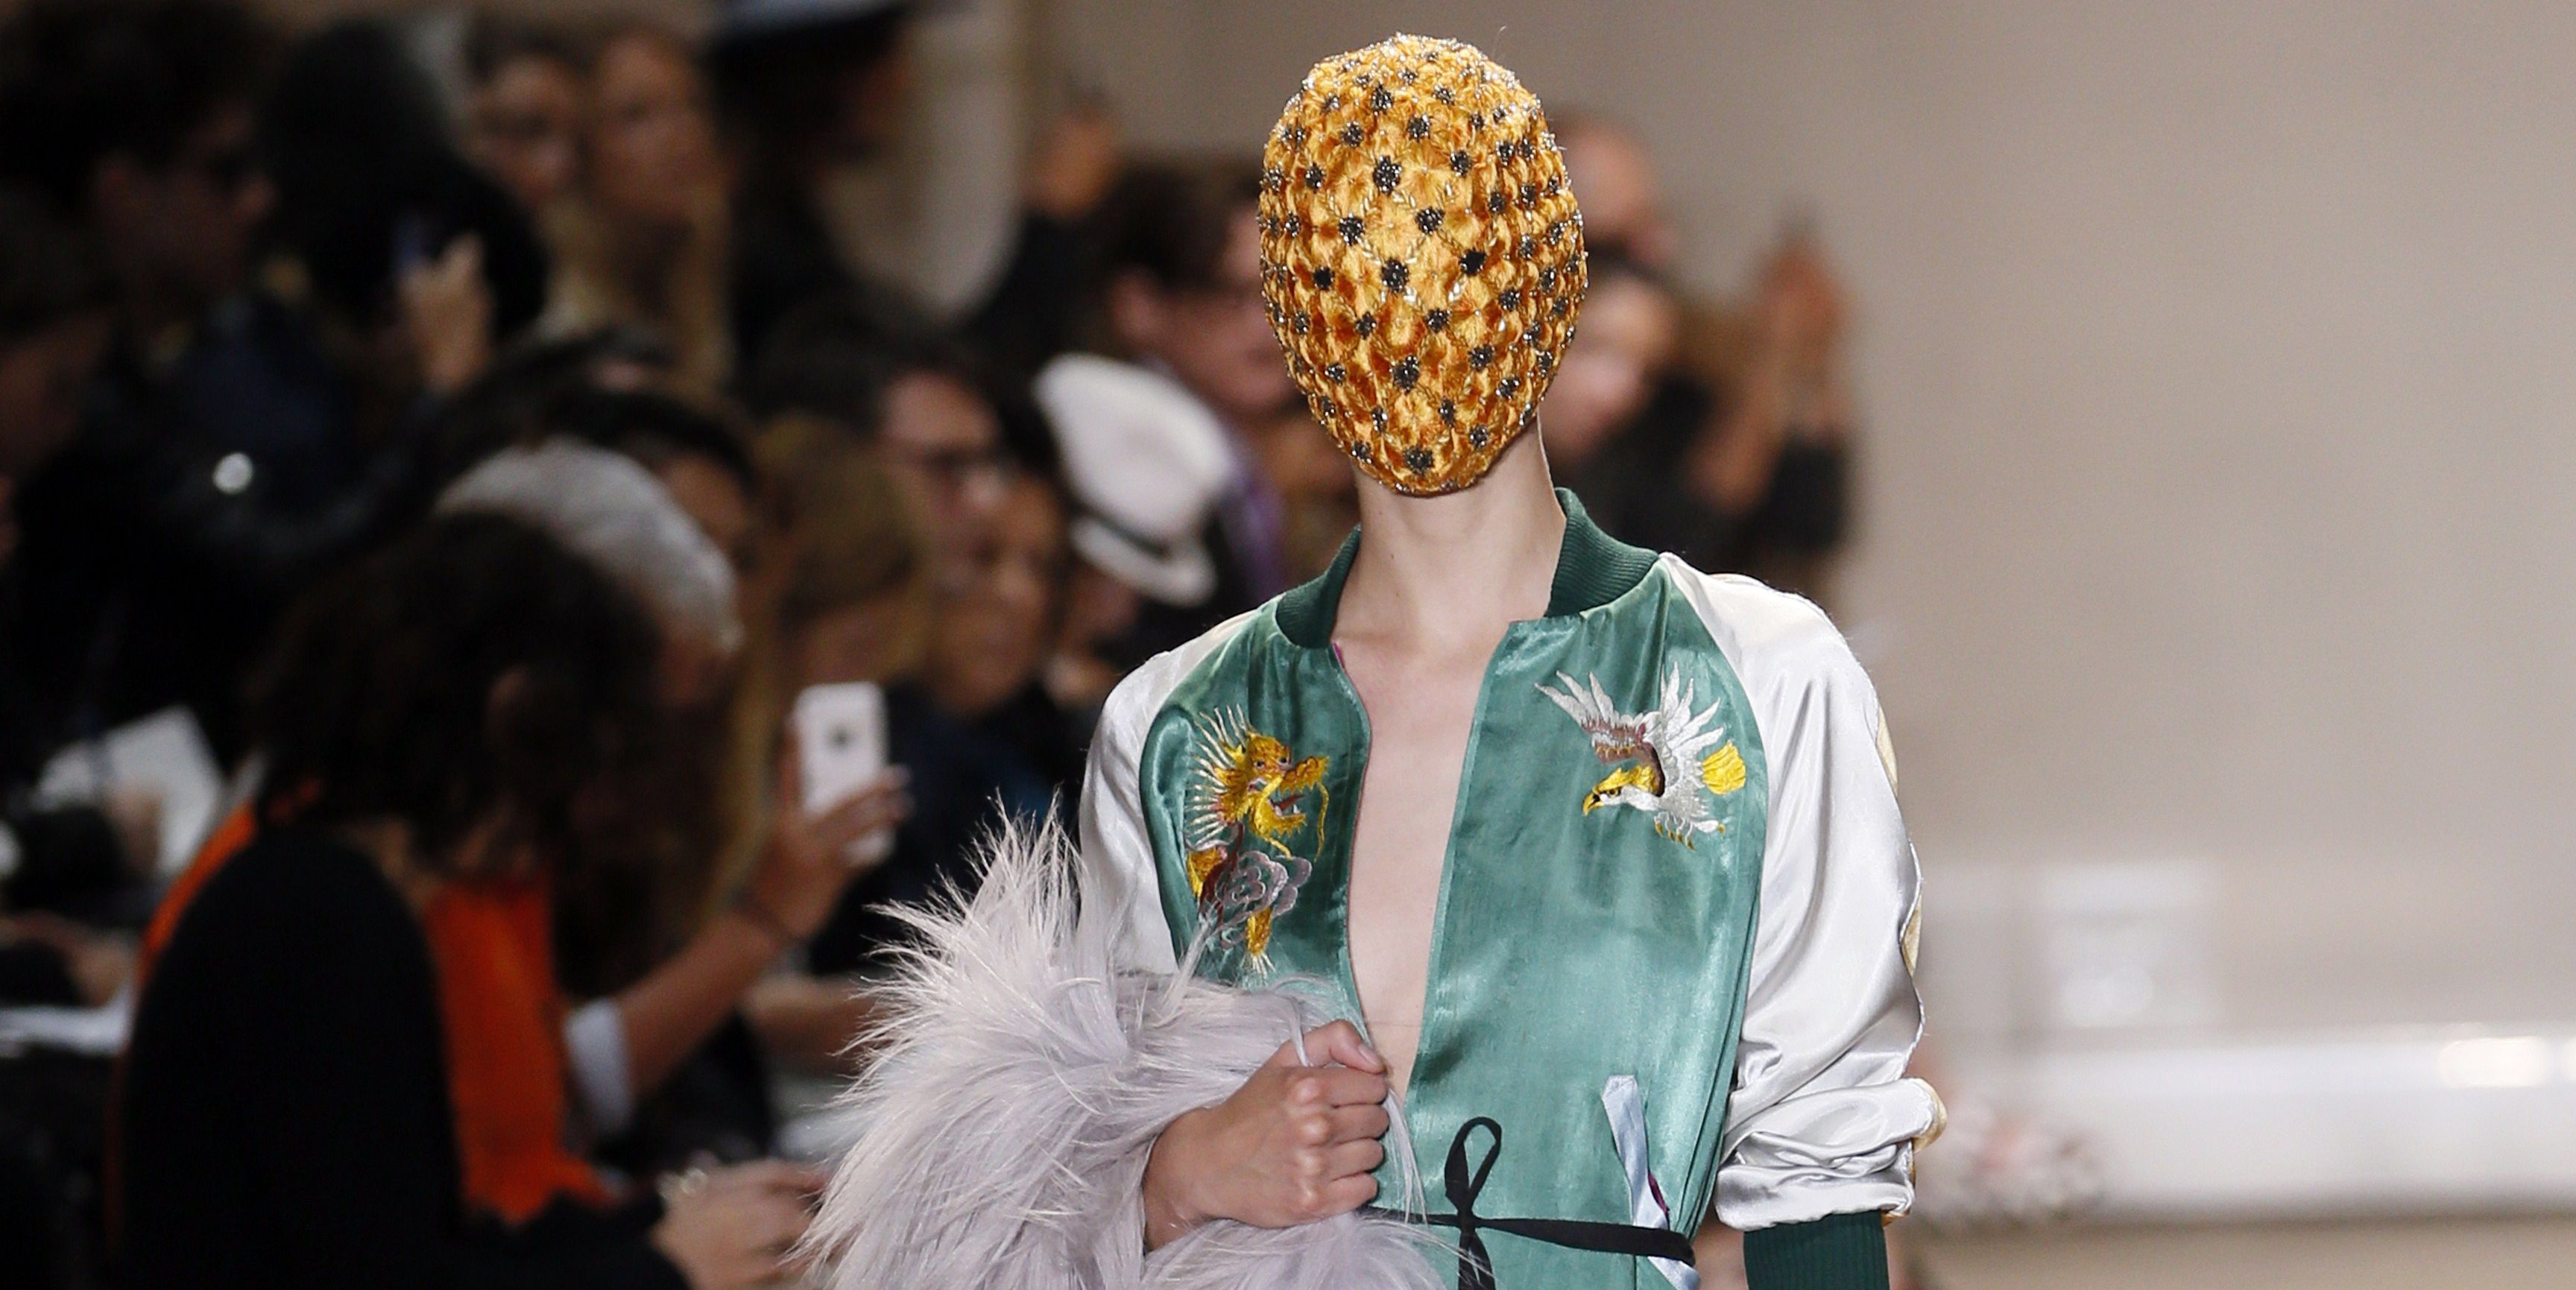 Mask Moments On The Autumn/Winter 2019 Runways And Beyond